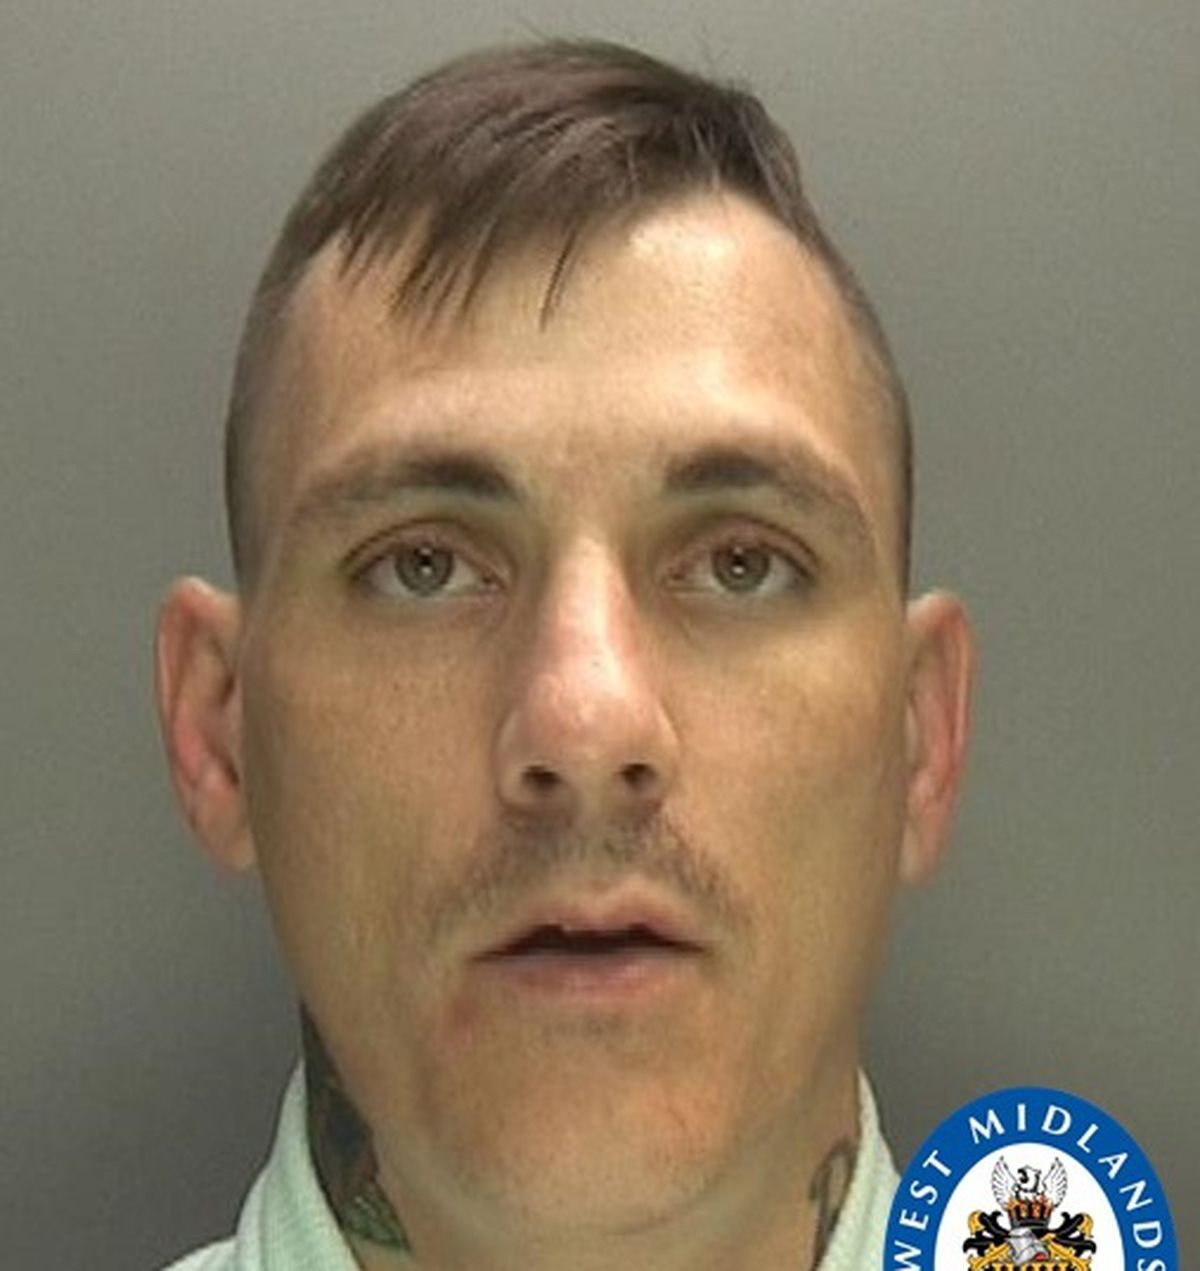 Luke Ireland was sentenced to two and a half years behind bars